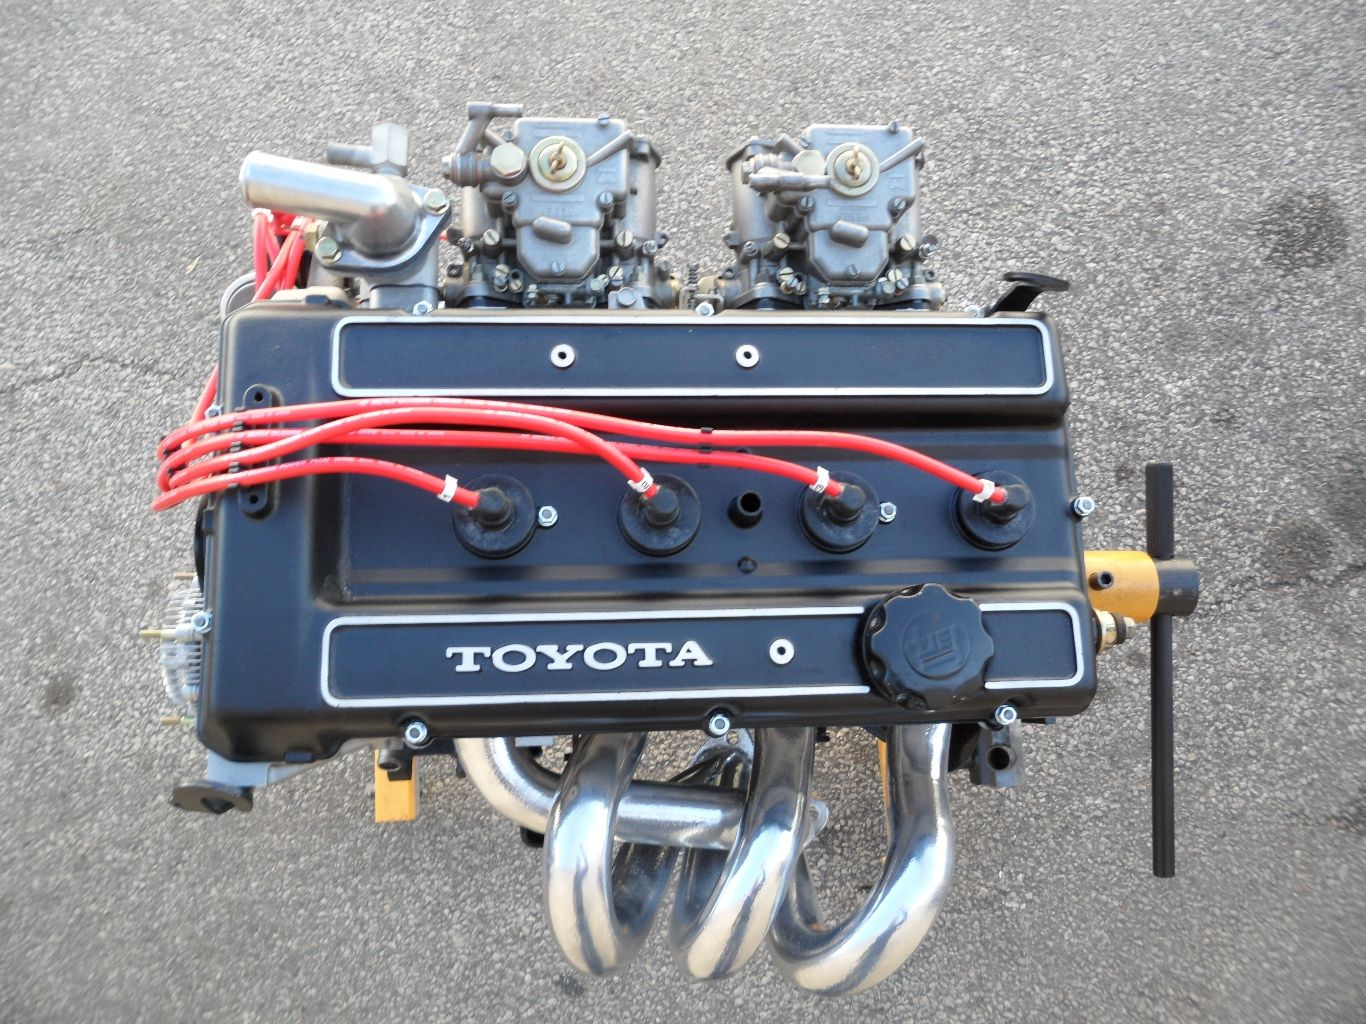 toyota 2tg engine for sale 6 te27 levin engines for sale toyota car 1970 s